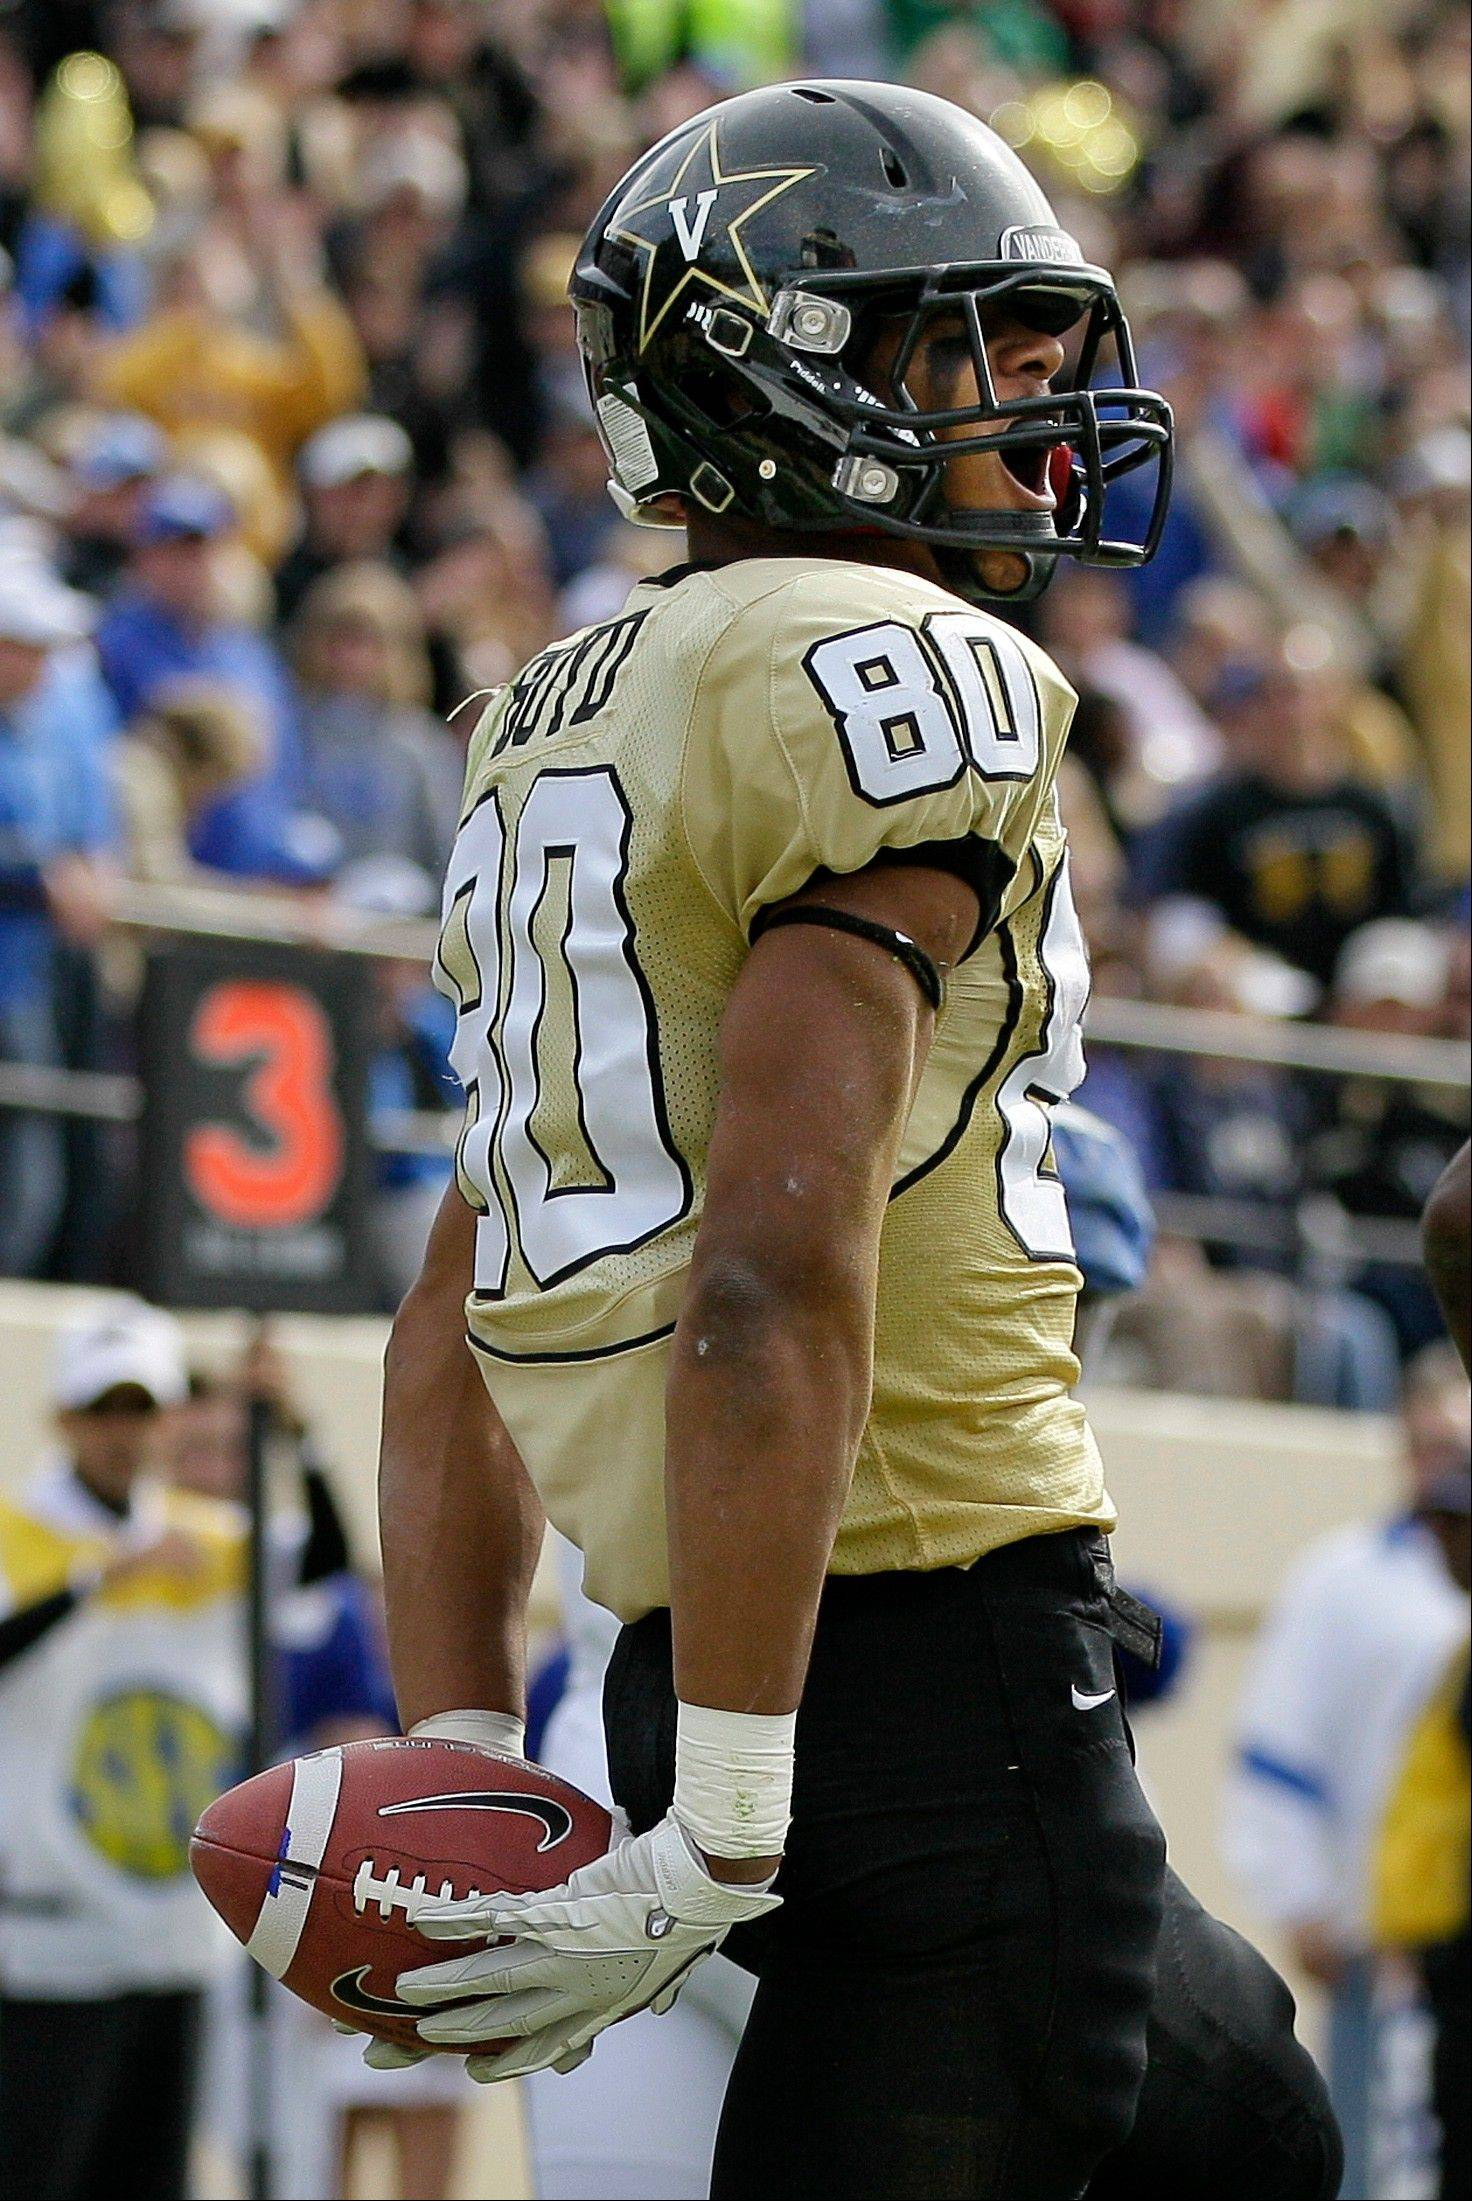 Associated Press Vanderbilt wide receiver Chris Boyd celebrates after scoring a touchdown against Kentucky during an NCAA college football game in Nashville. Metro Nashville Police said 21-year-old Boyd gave another defendant advice on how to cover up an alleged rape of an unconscious student on campus. Vanderbilt released a statement Friday, Aug. 16, saying he had been suspended from the team pending further review. Four other players already have been dismissed.